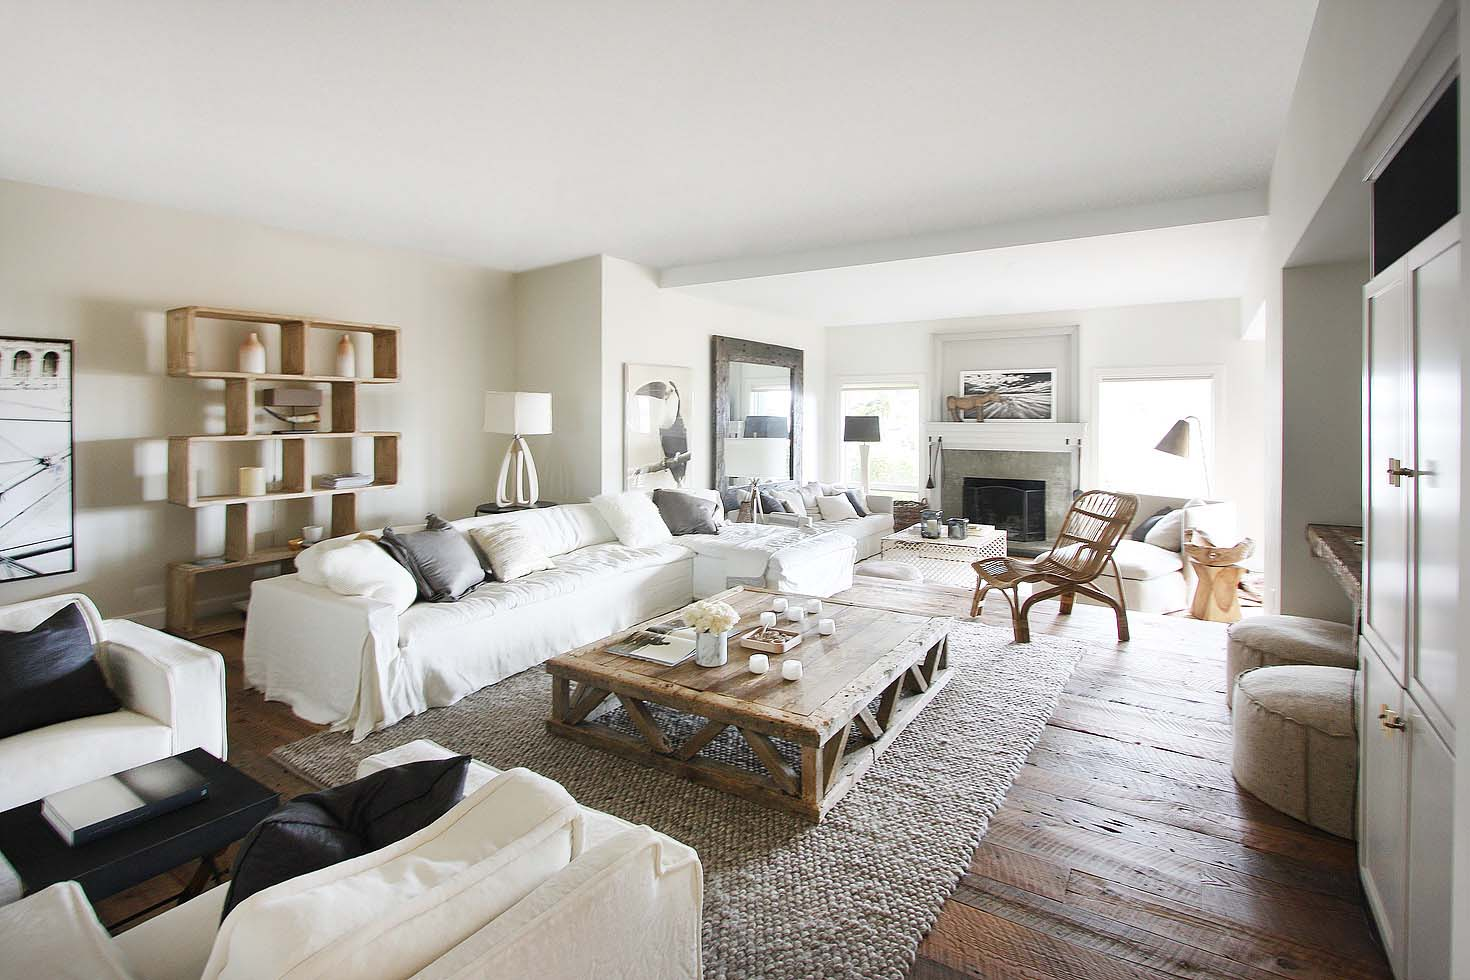 A Sunken Living Room Beyond Is Bright And Airy Thanks To Large Windows And  Light Reflecting Off The White Walls. An Open Concept Floorplan Allows For  Easy ...